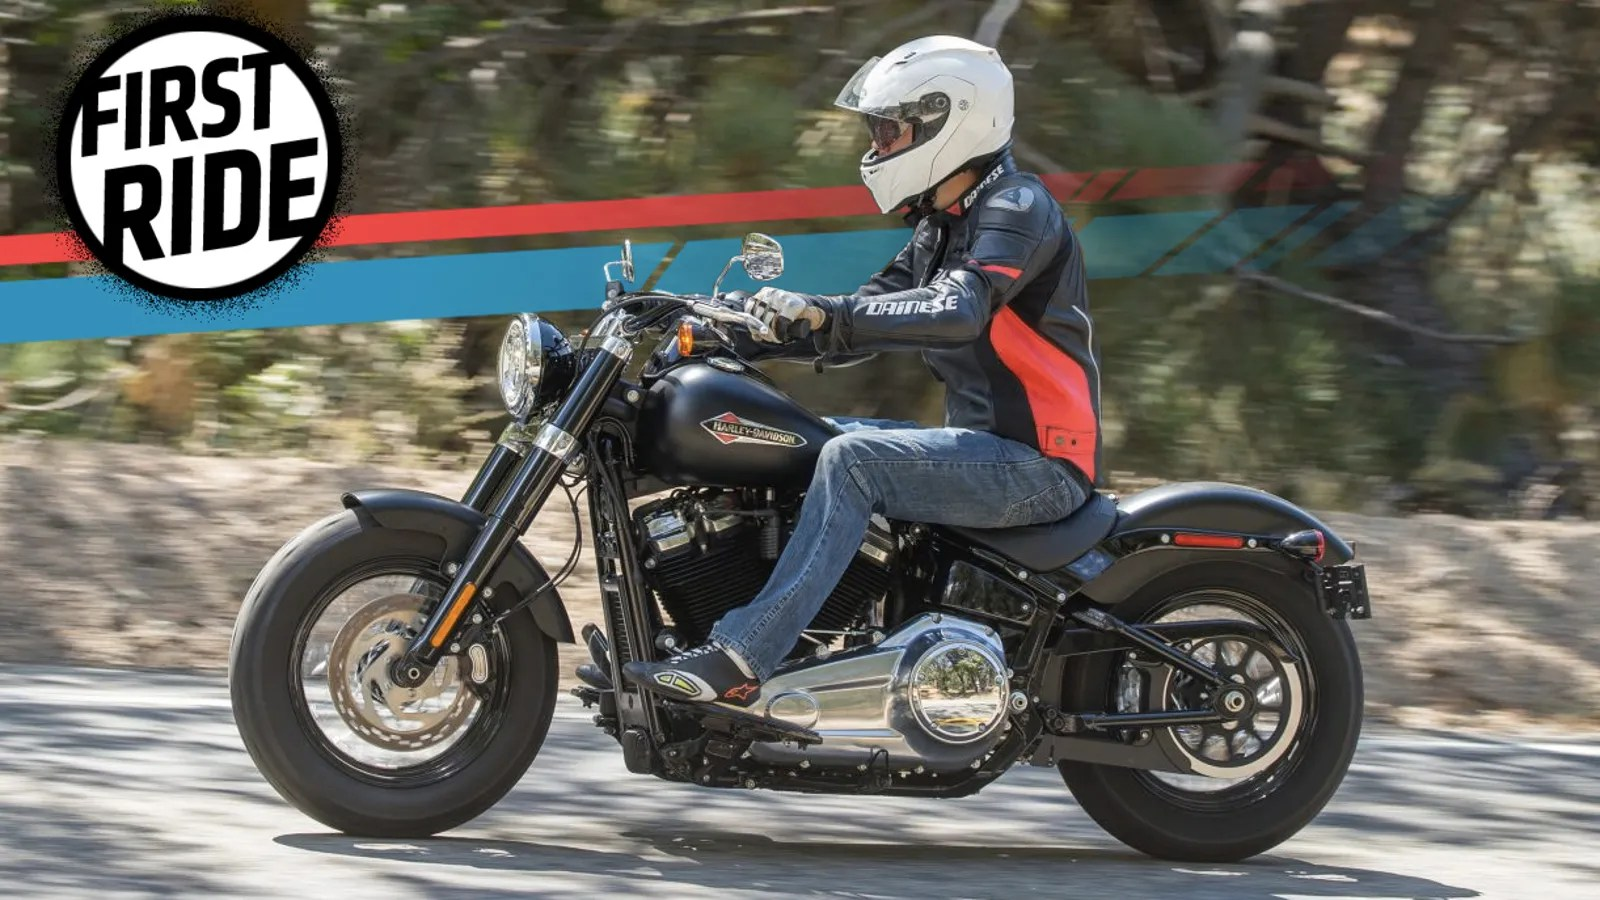 Fatboy Lamp The Idiot's Guide To All Eight New Harley-davidson Cruisers